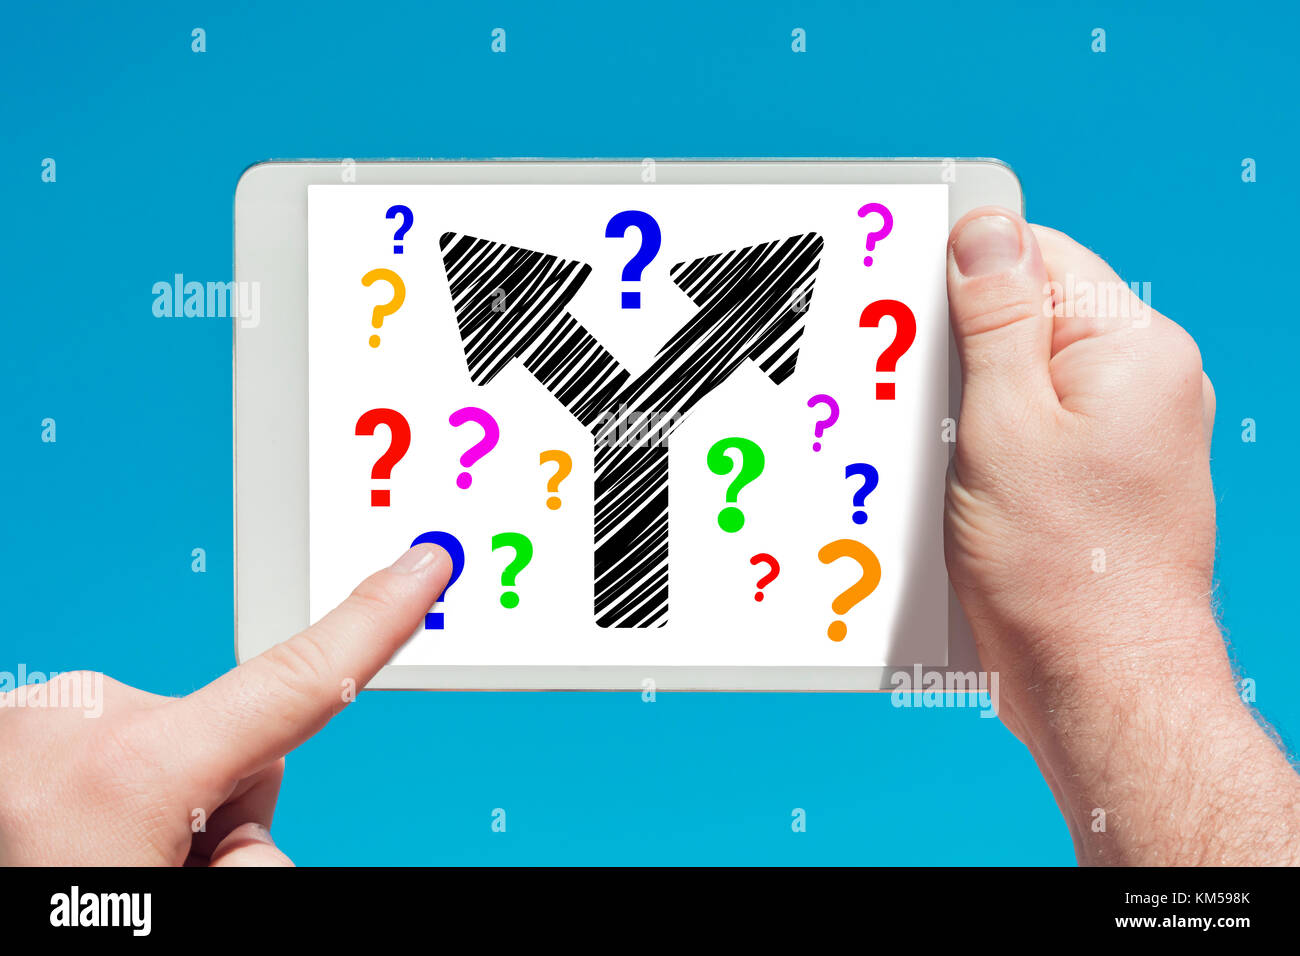 Man Holding A Tablet Device Showing Two Way Arrow Symbol Concept And